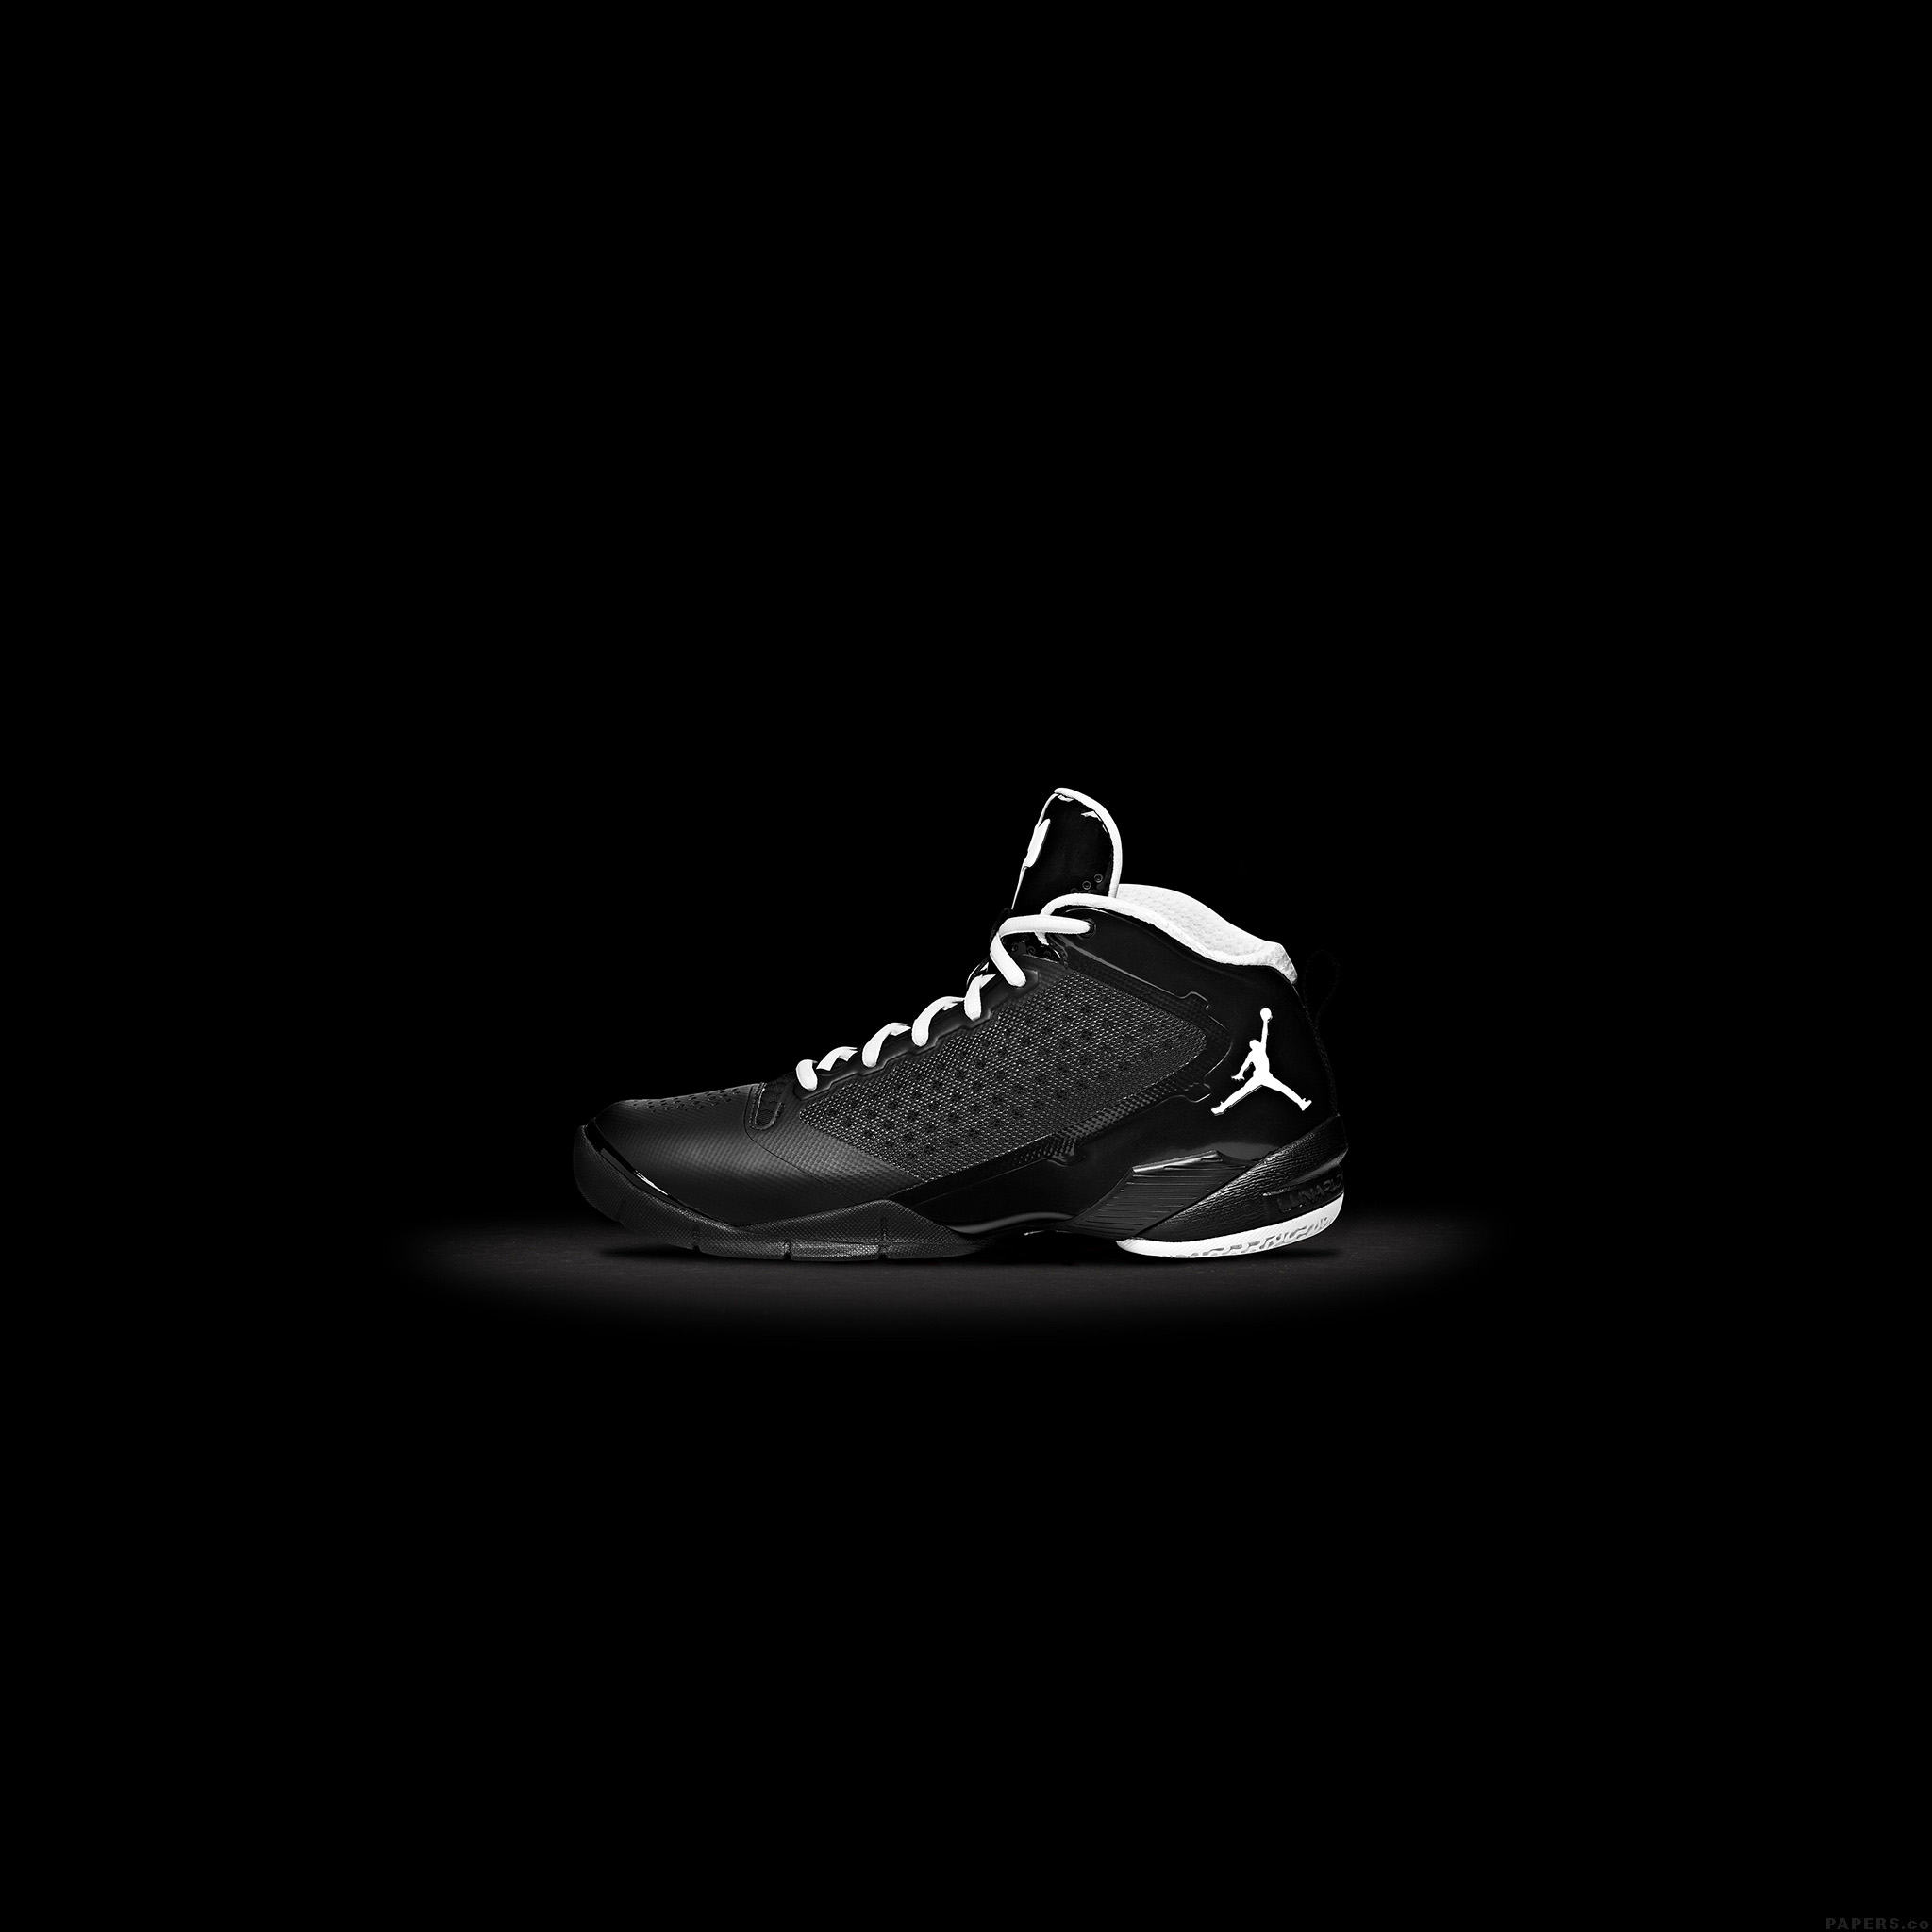 air jordan ad analysis essay Nike had to find a way to situate the future star into an air jordan ad campaign to  help get their name (jordan and his shoes) out to the public.